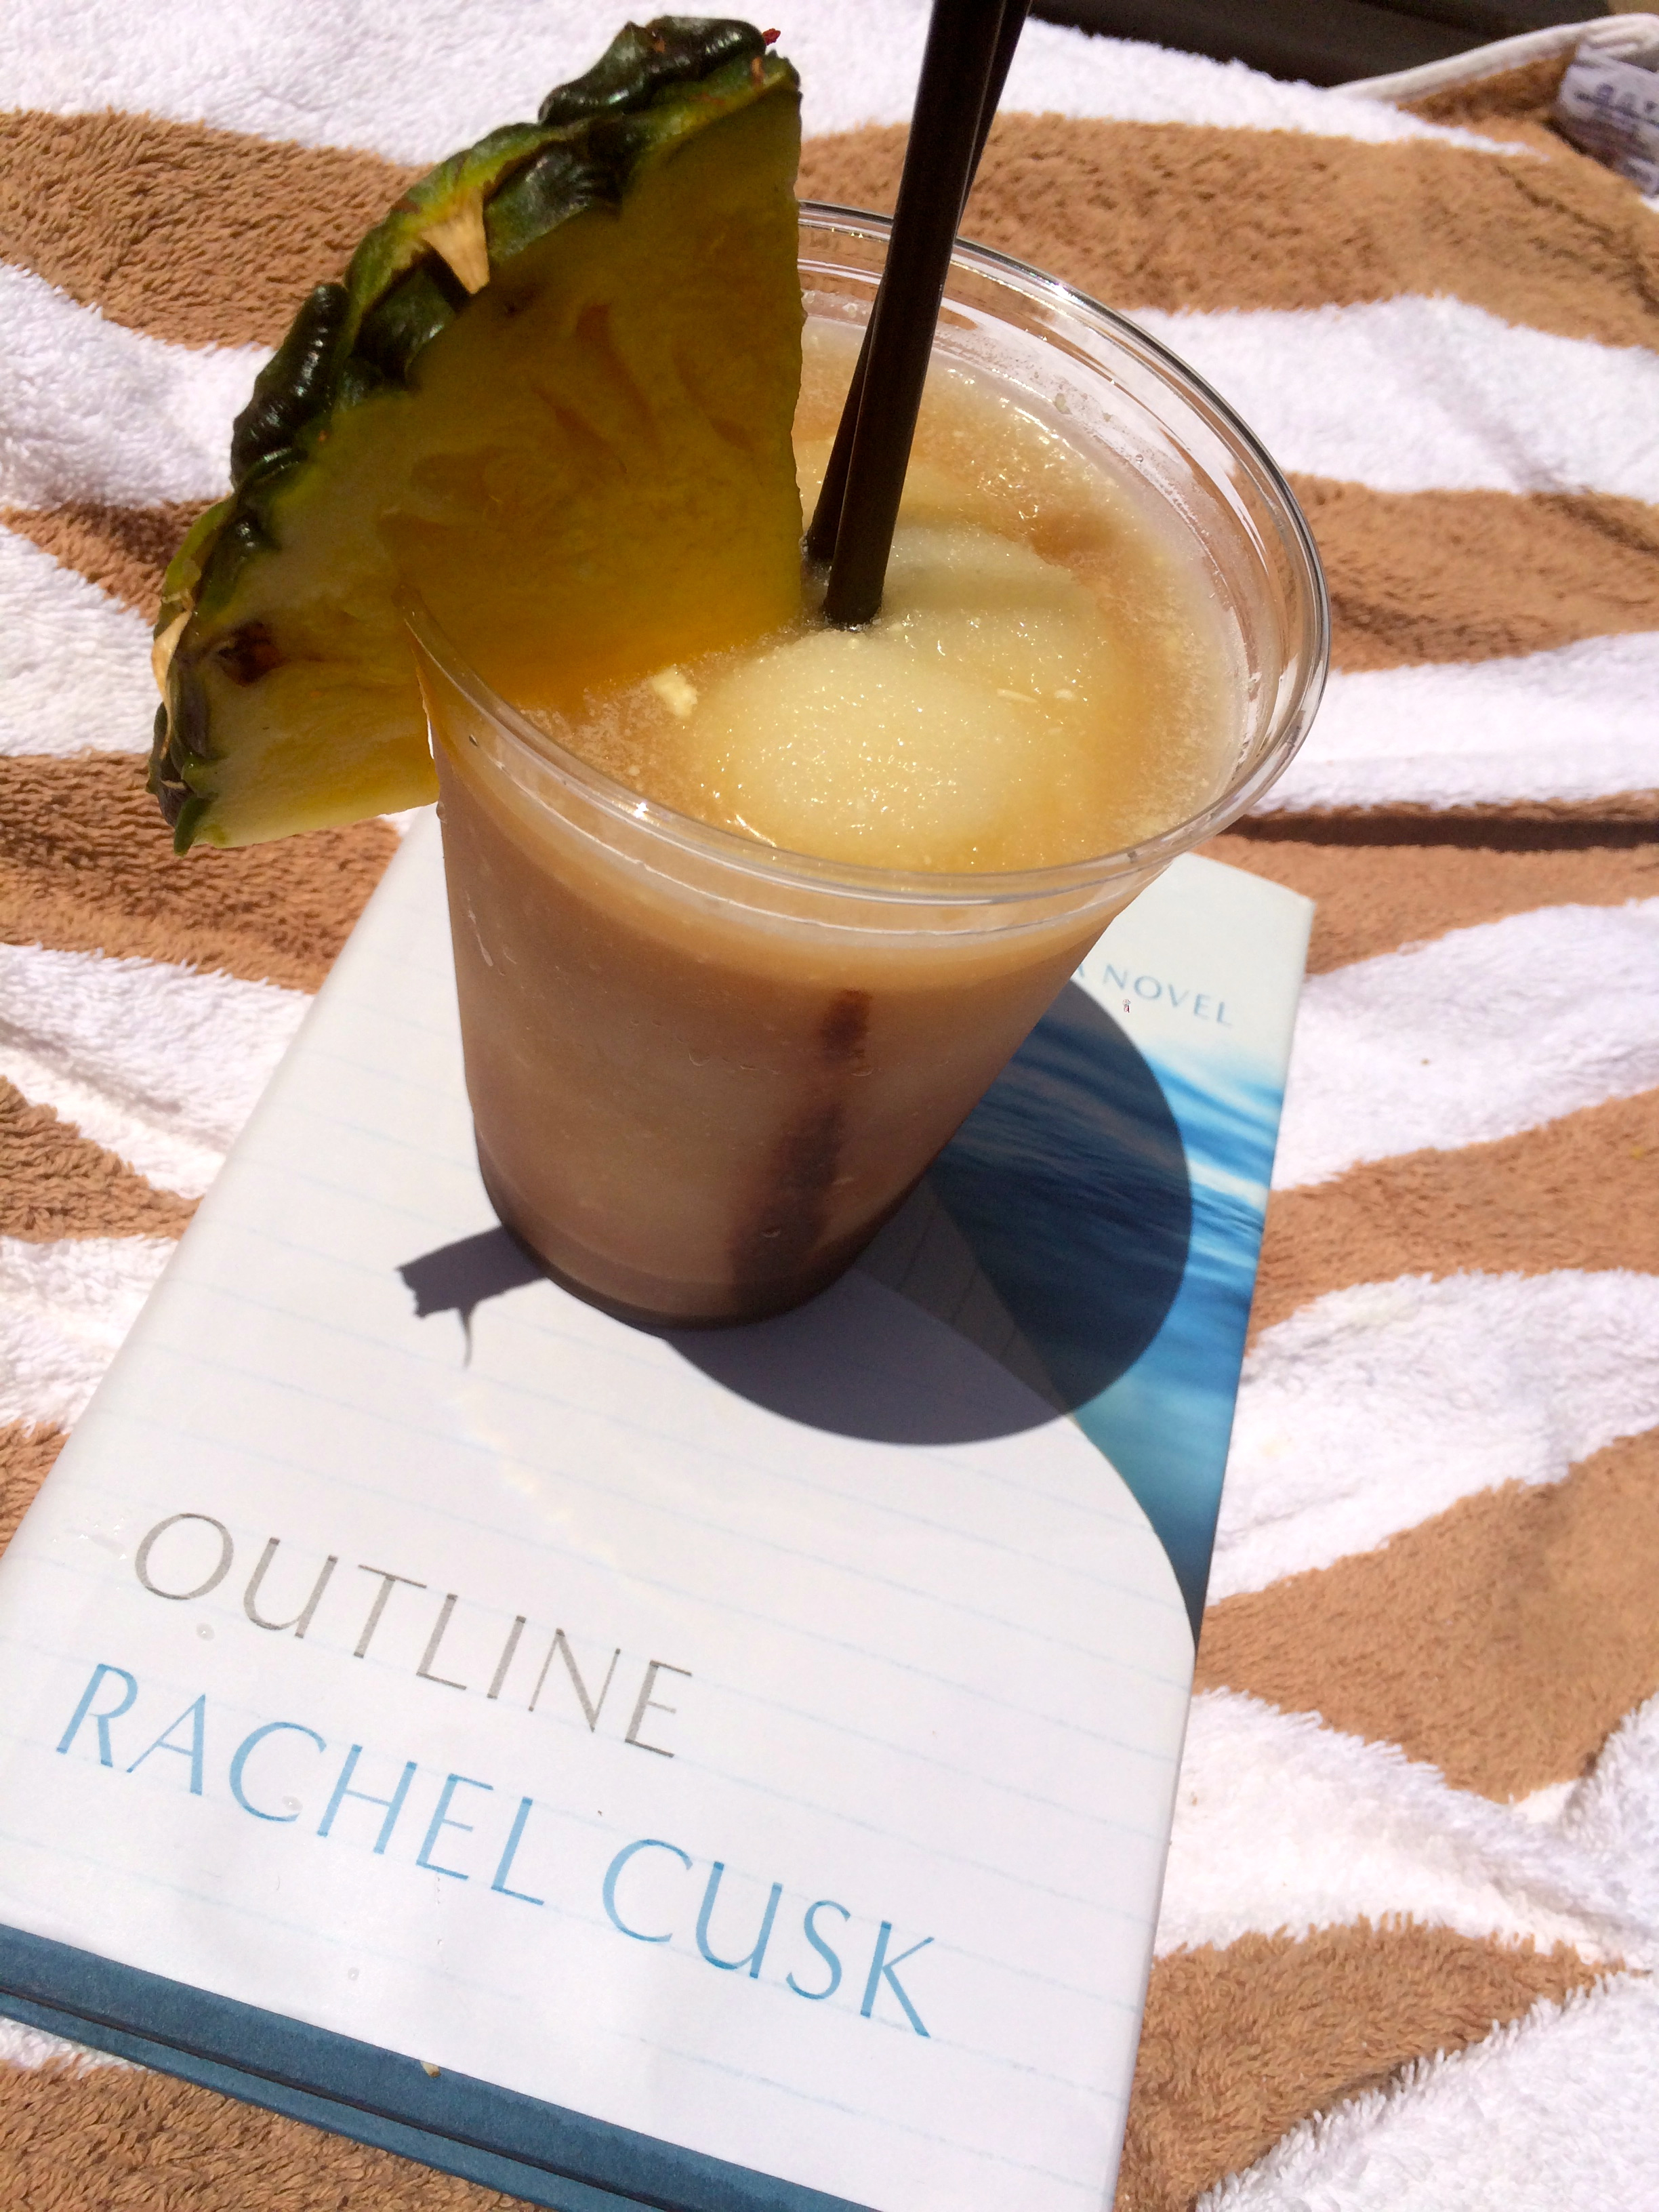 The Outline by Rachel Cusk